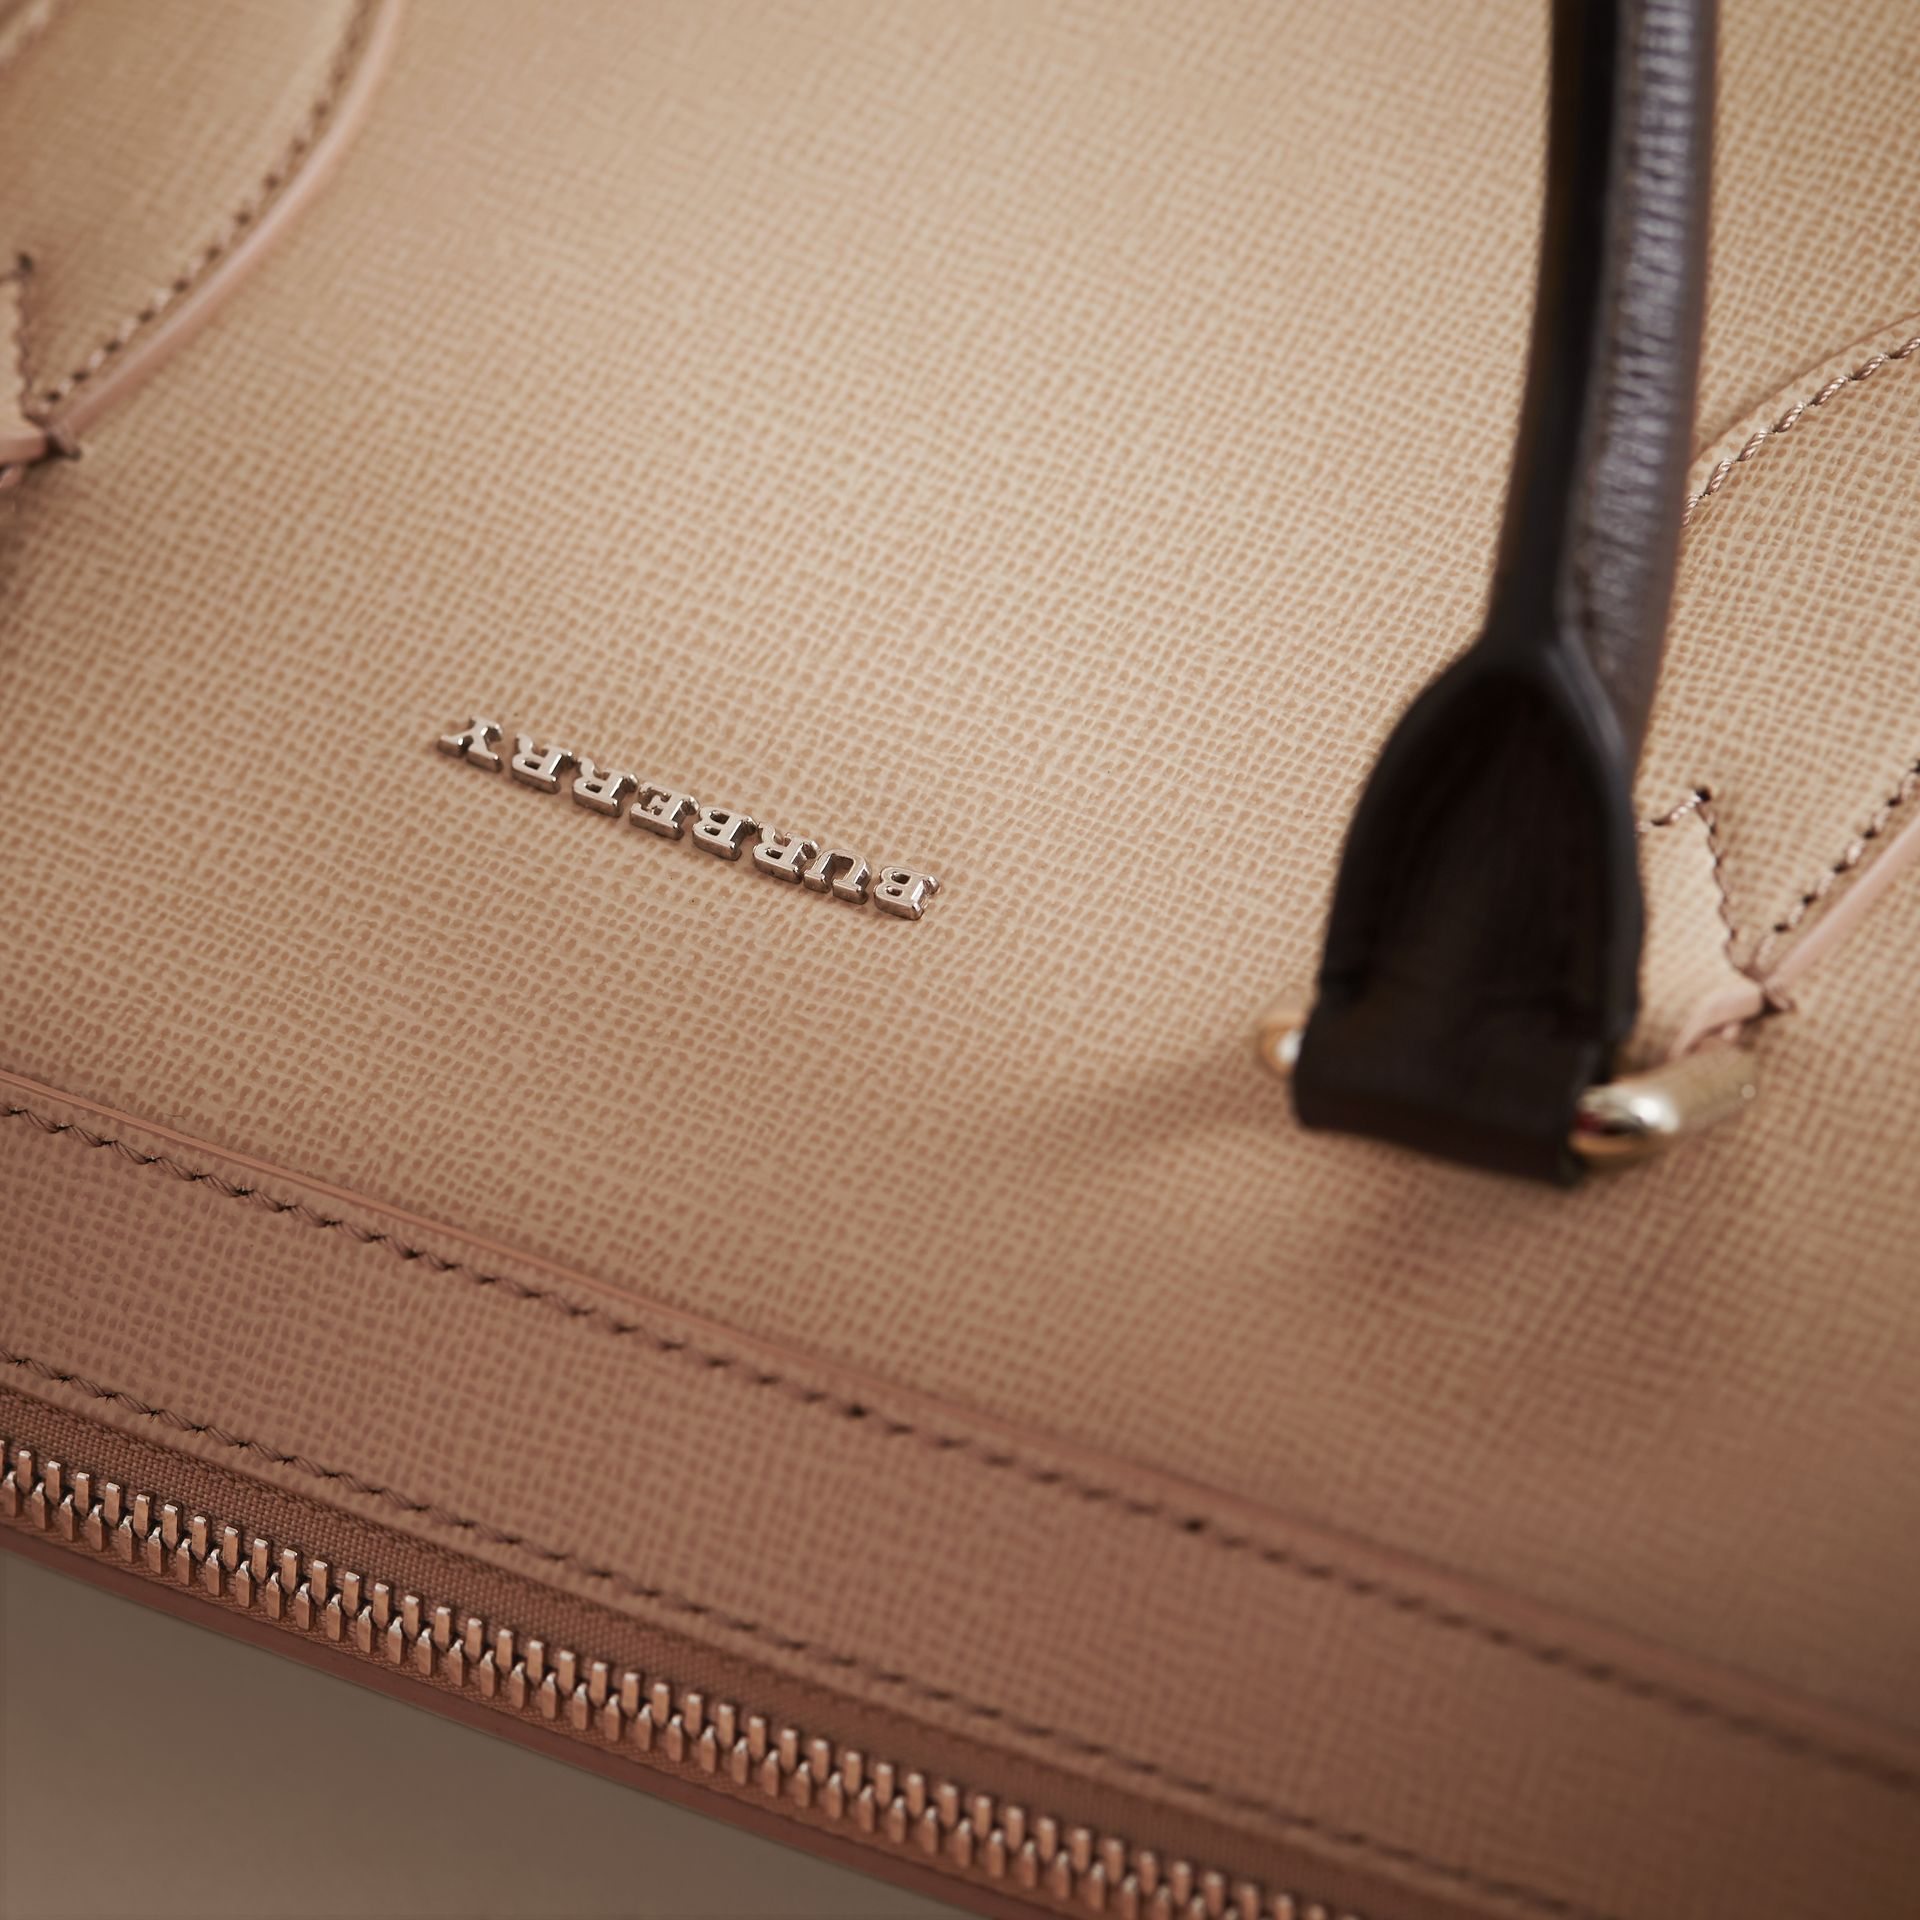 London Leather Briefcase in Honey/bitter Chocolate - Men | Burberry - gallery image 7